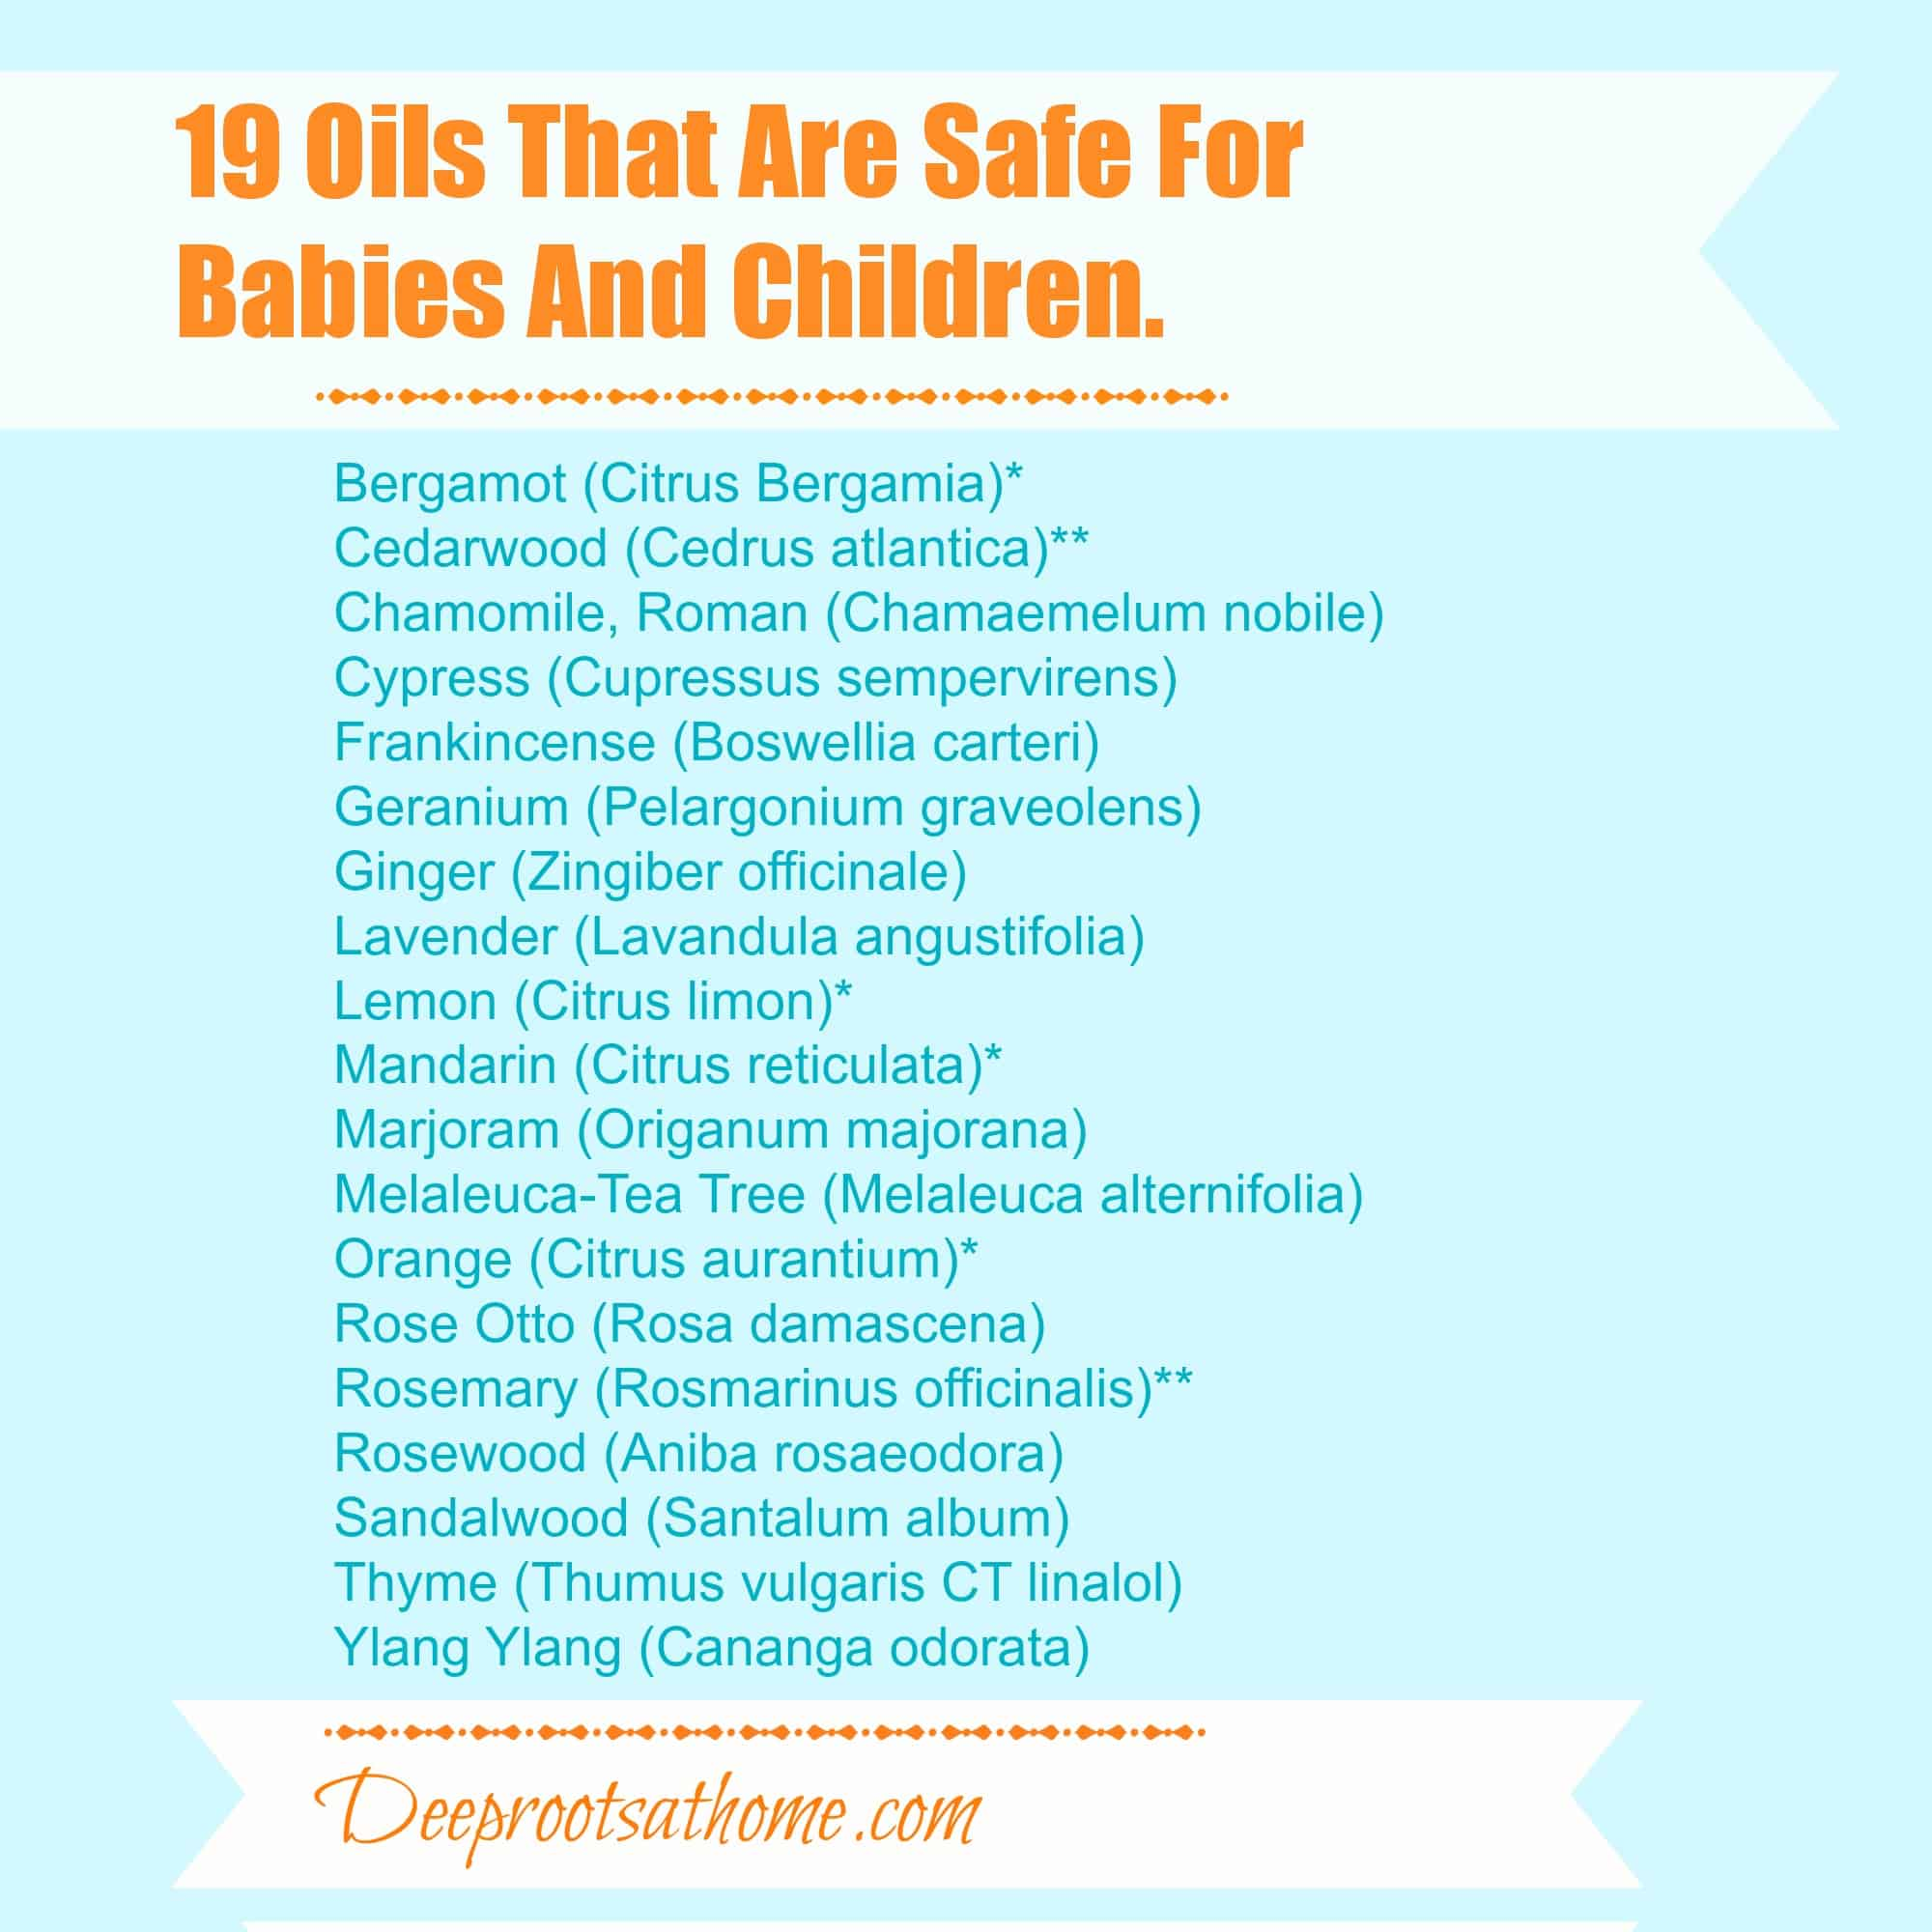 Use With Confidence: 19 Known Safe Essential Oils For Children & Babies, teething, diaper rash, fevers, stomach ache, coughs, colds and flu, thrush, colic, sleeplessness, diarrhea, crying, carrier oils, coconut oil, sweet almond oil, Frankincense, Geranium, Sandalwood, Mandarin, Grapefruit, Ylang Ylang, The Complete Book of Essential Oils and Aromatherapy, Mountain Rose Herbs, aromatherapy, EOs, carrier oils, coconut oil, dilutions, research, books, Valerie Ann Worwood, colic, sleeplessness, massage therapy, healing touch, earaches, teething, ylang-ylang, geranium rose, minor burns, fever, headache, colds and flu,